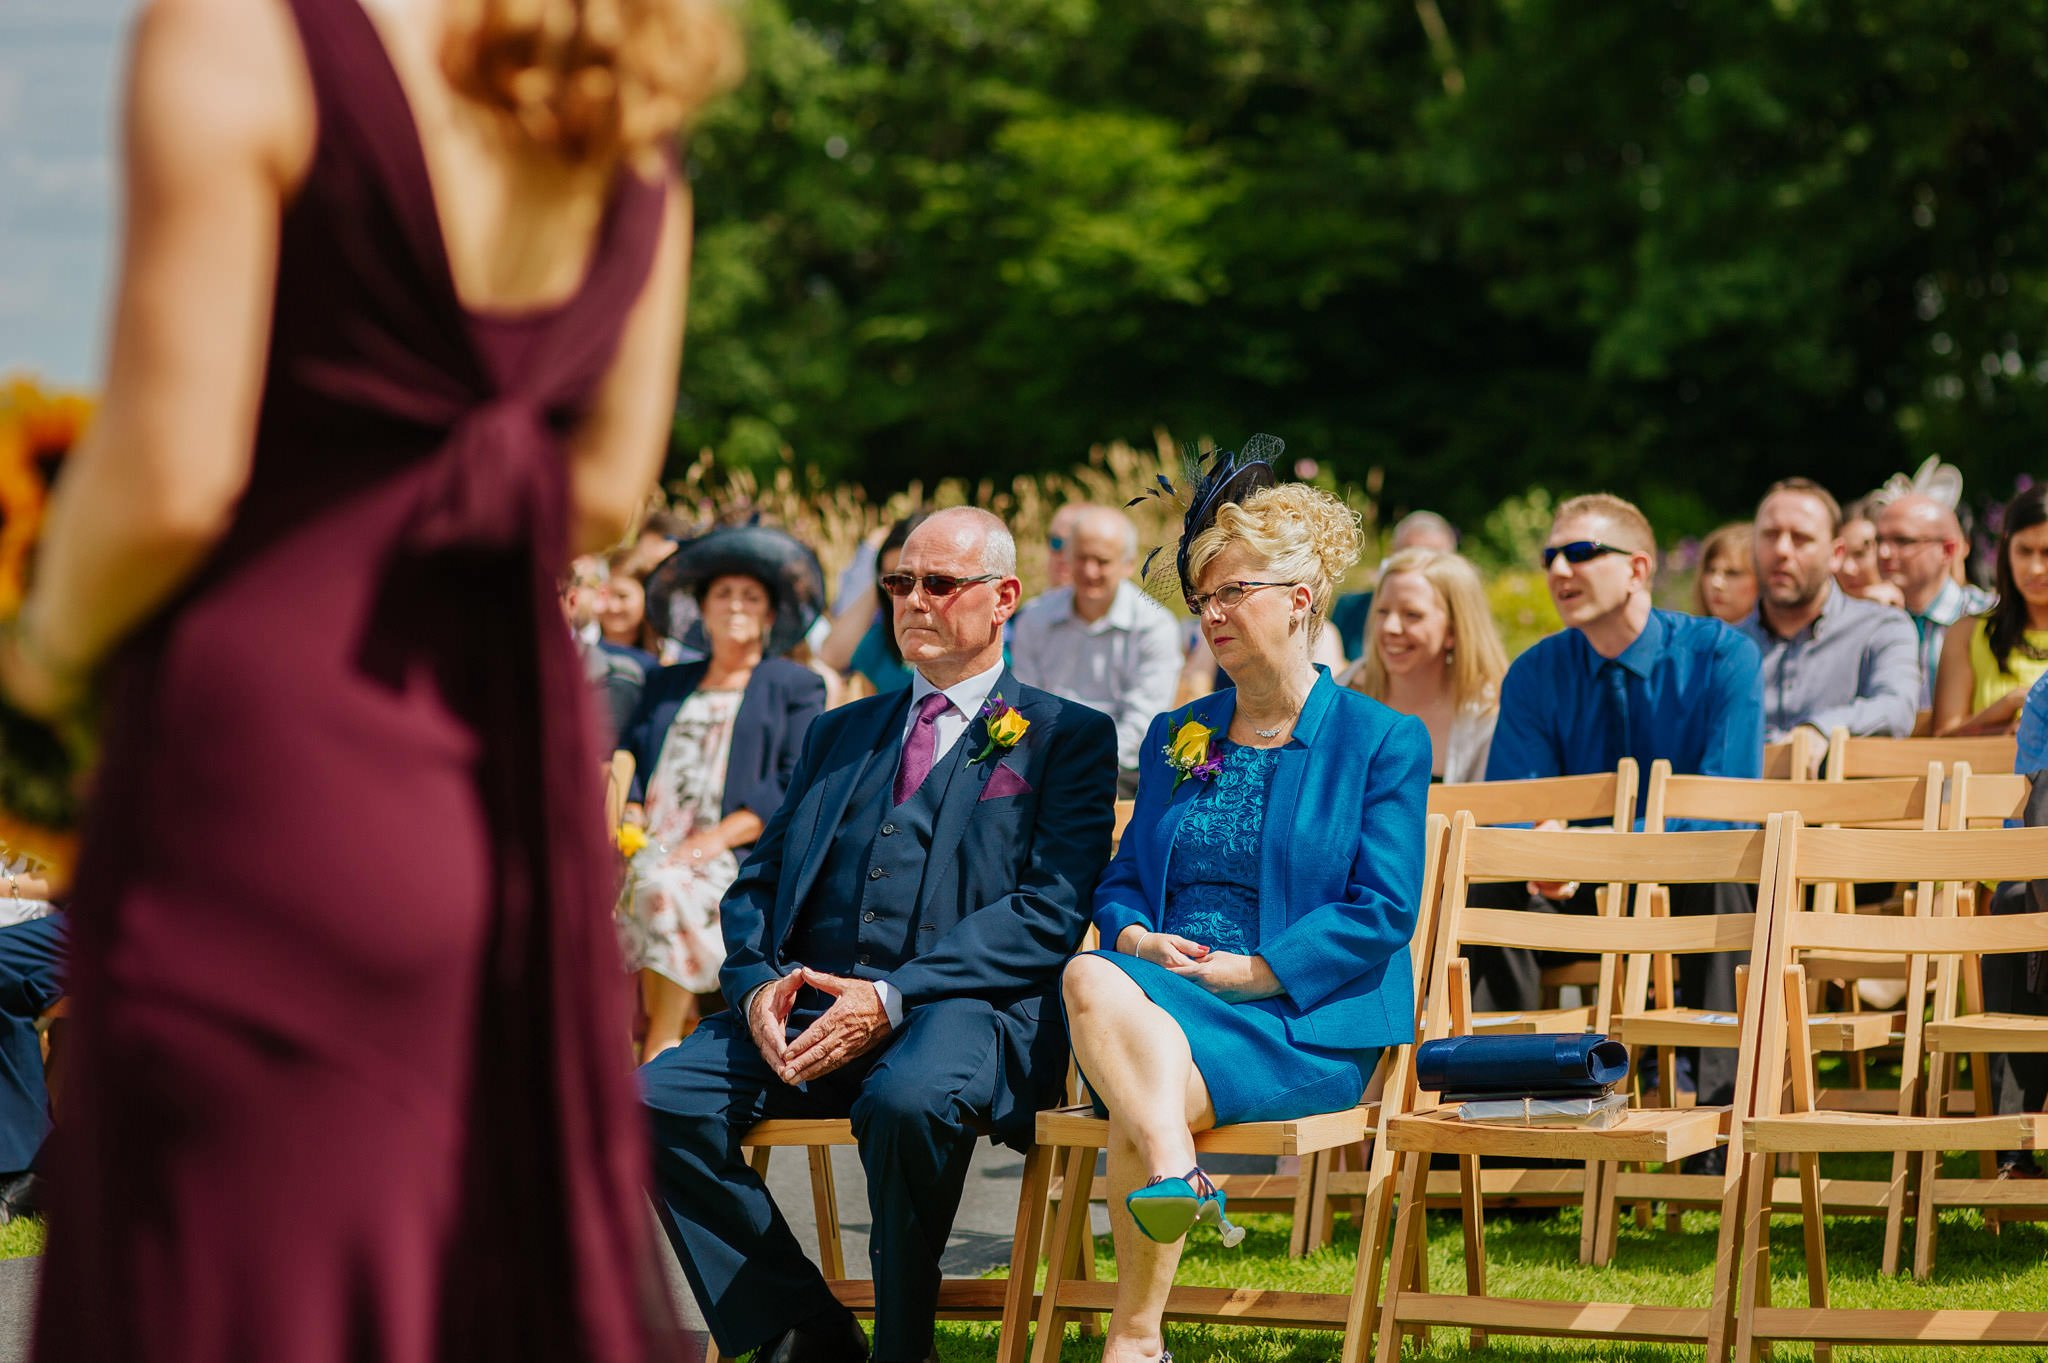 Wedding photography at Homme House in Herefordshire, West Midlands 28